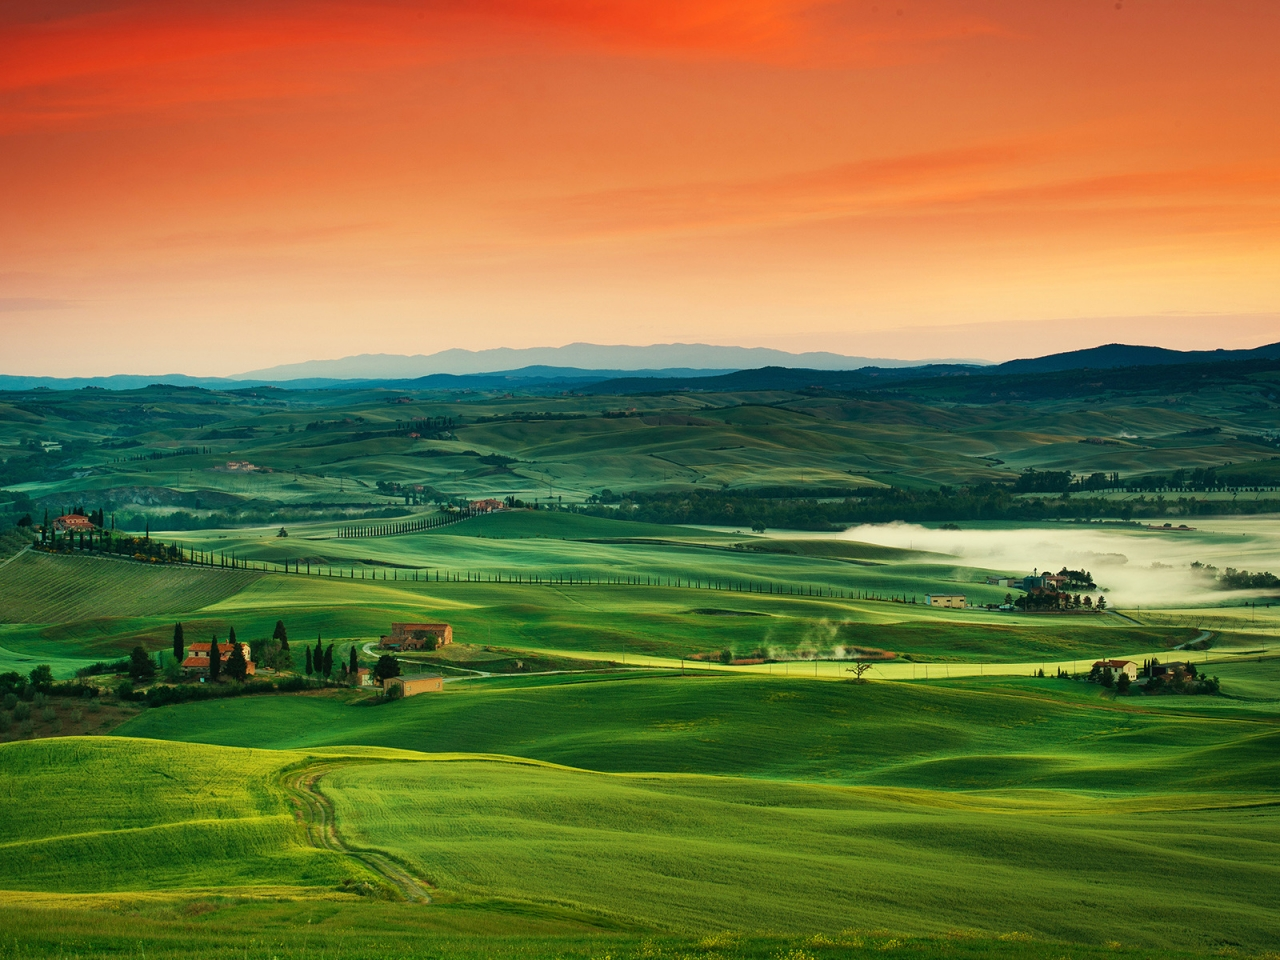 Tuscany Italy for 1280 x 960 resolution